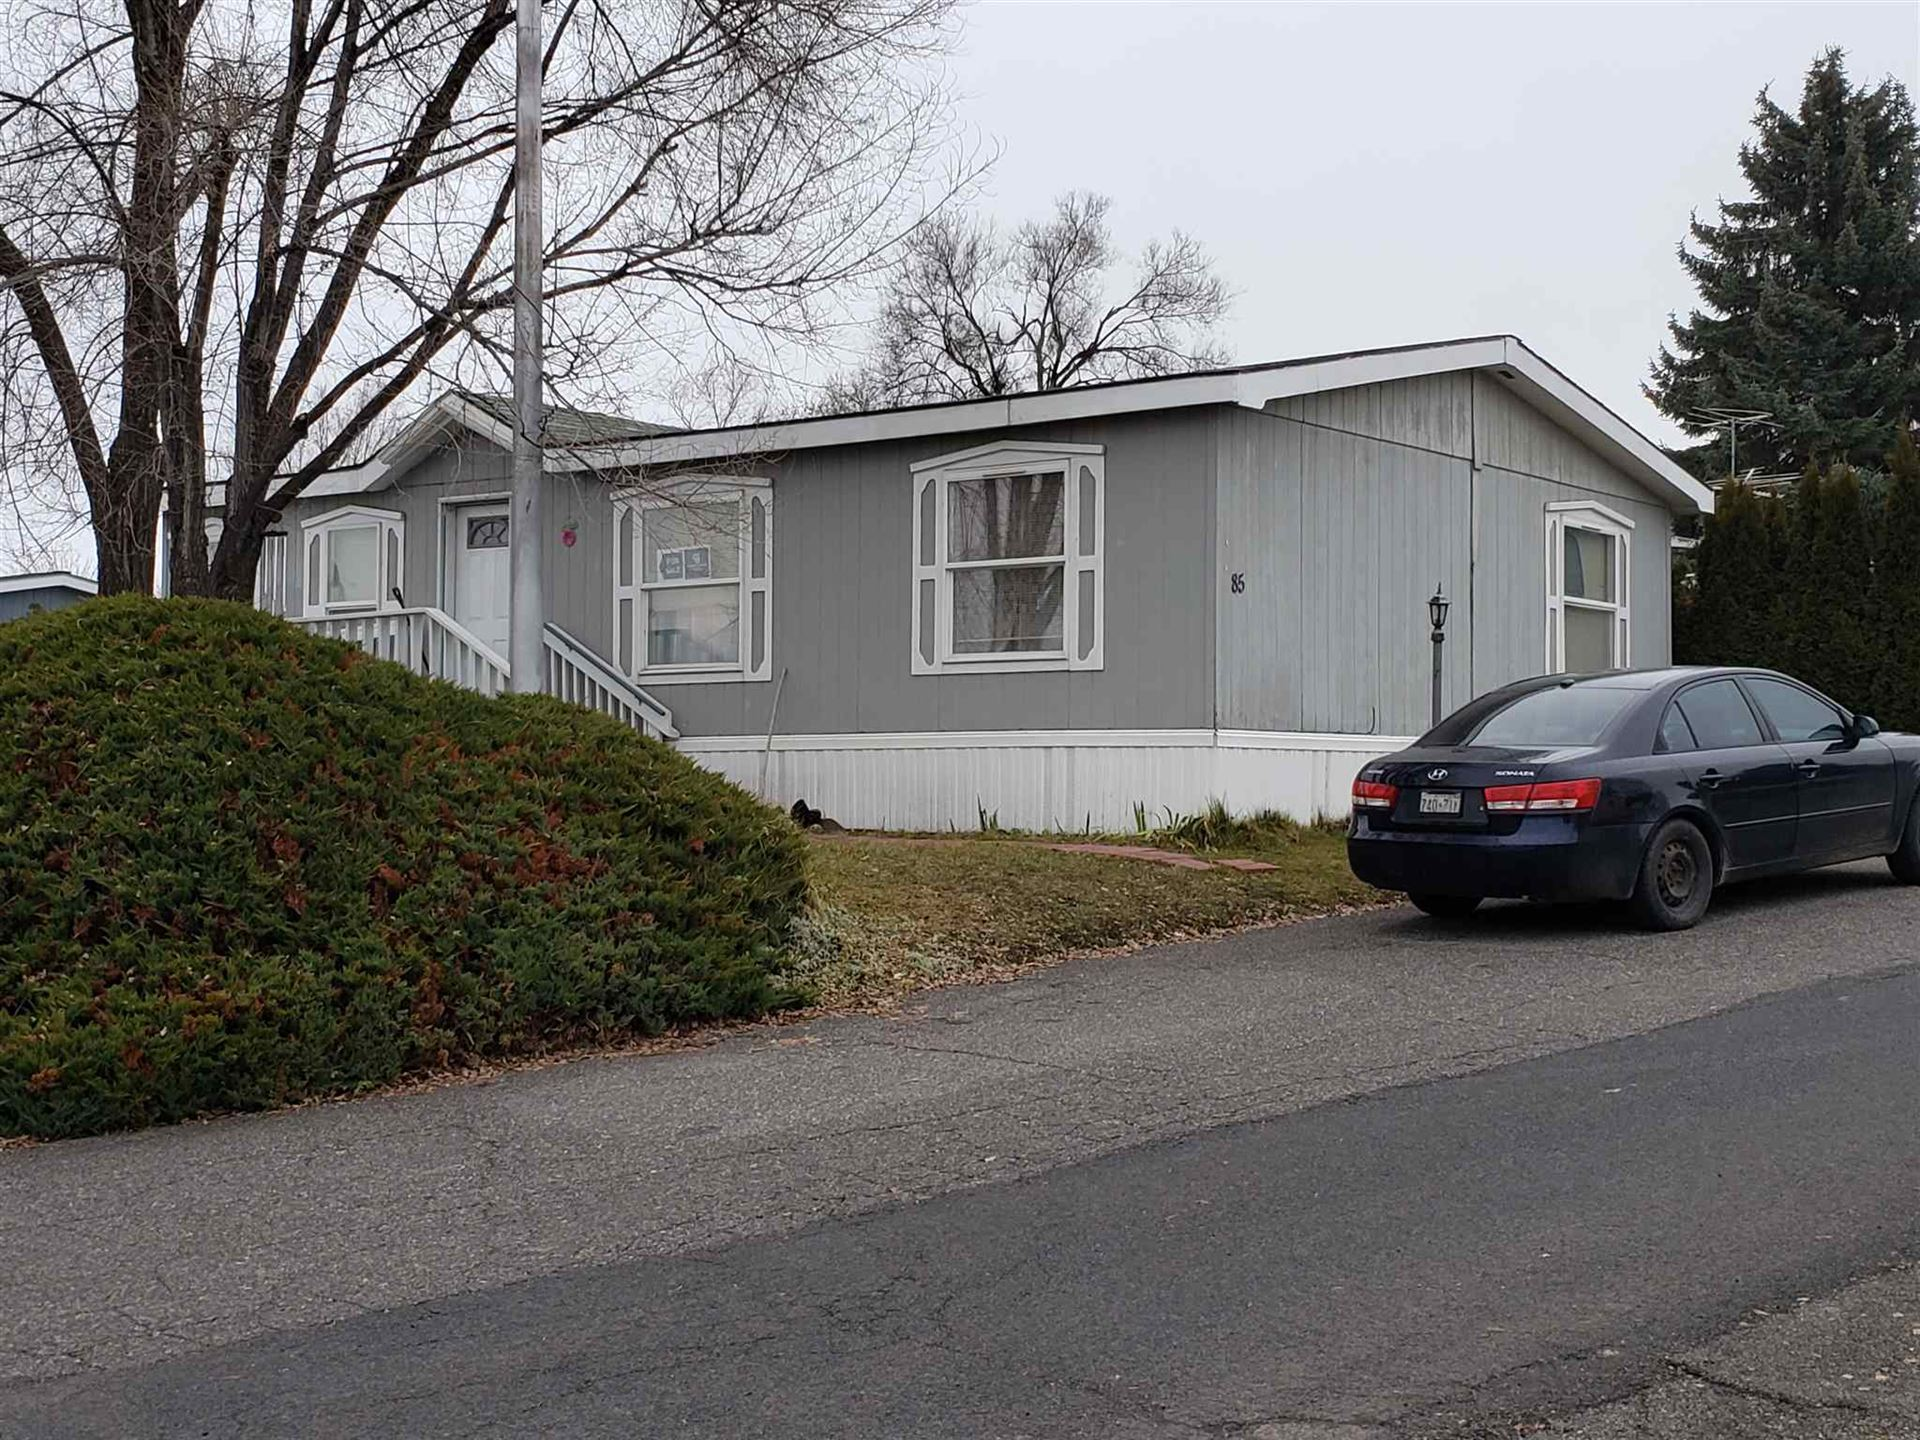 6300 E 2nd Ave #85, Spokane Valley, WA 99212-0759 - #: 202025636